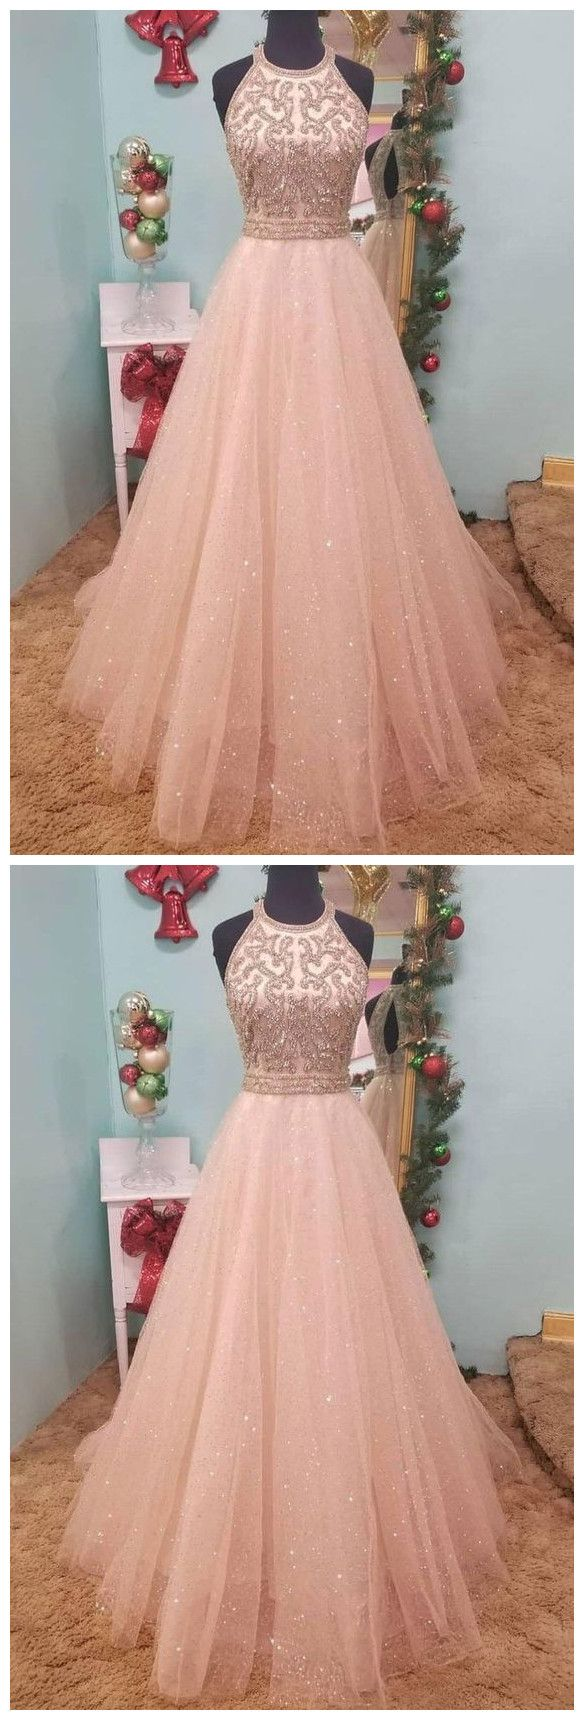 Floor Length Jewel Sleeveless Prom Dress with Beading, Sparkly Tulle Party Dress